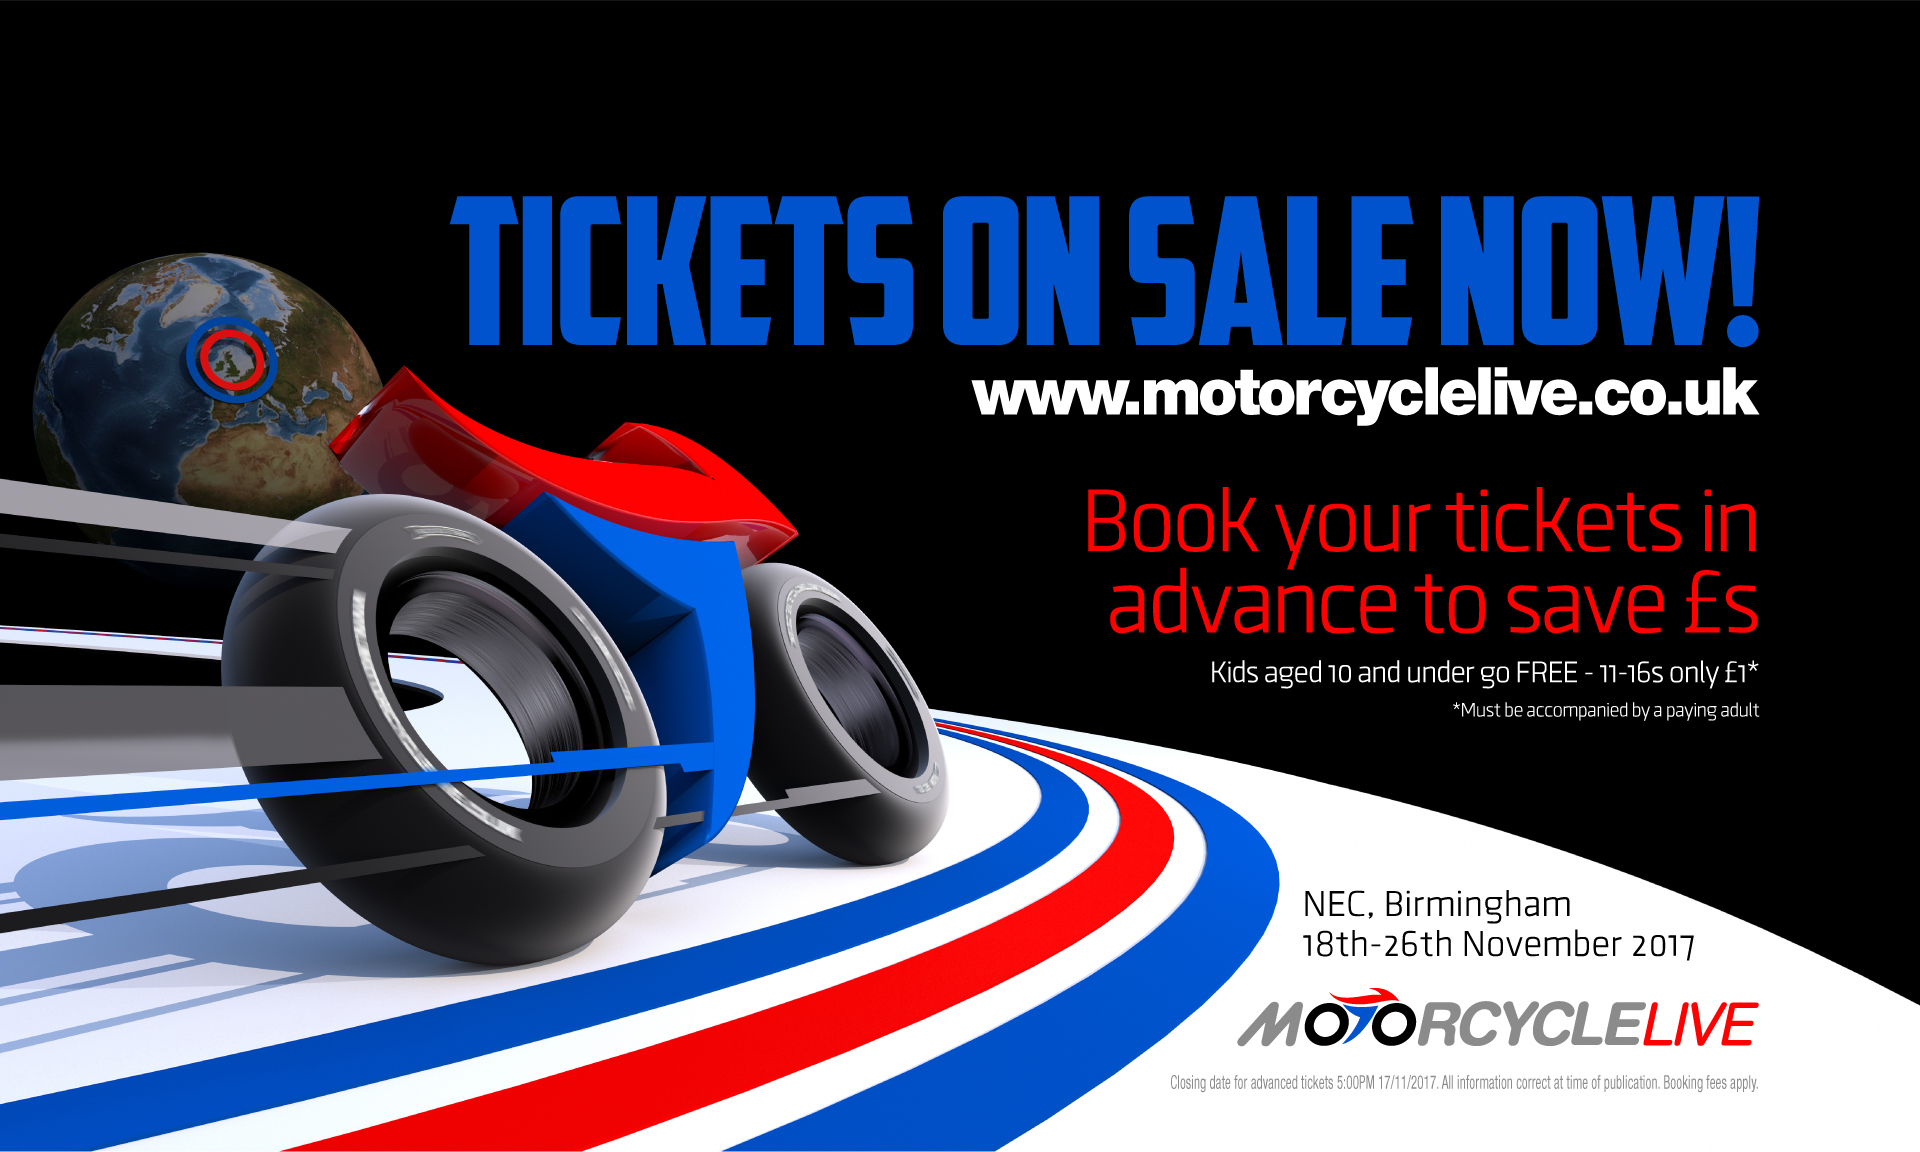 Motorcycle Live 2017 The National Motorcycle Museum